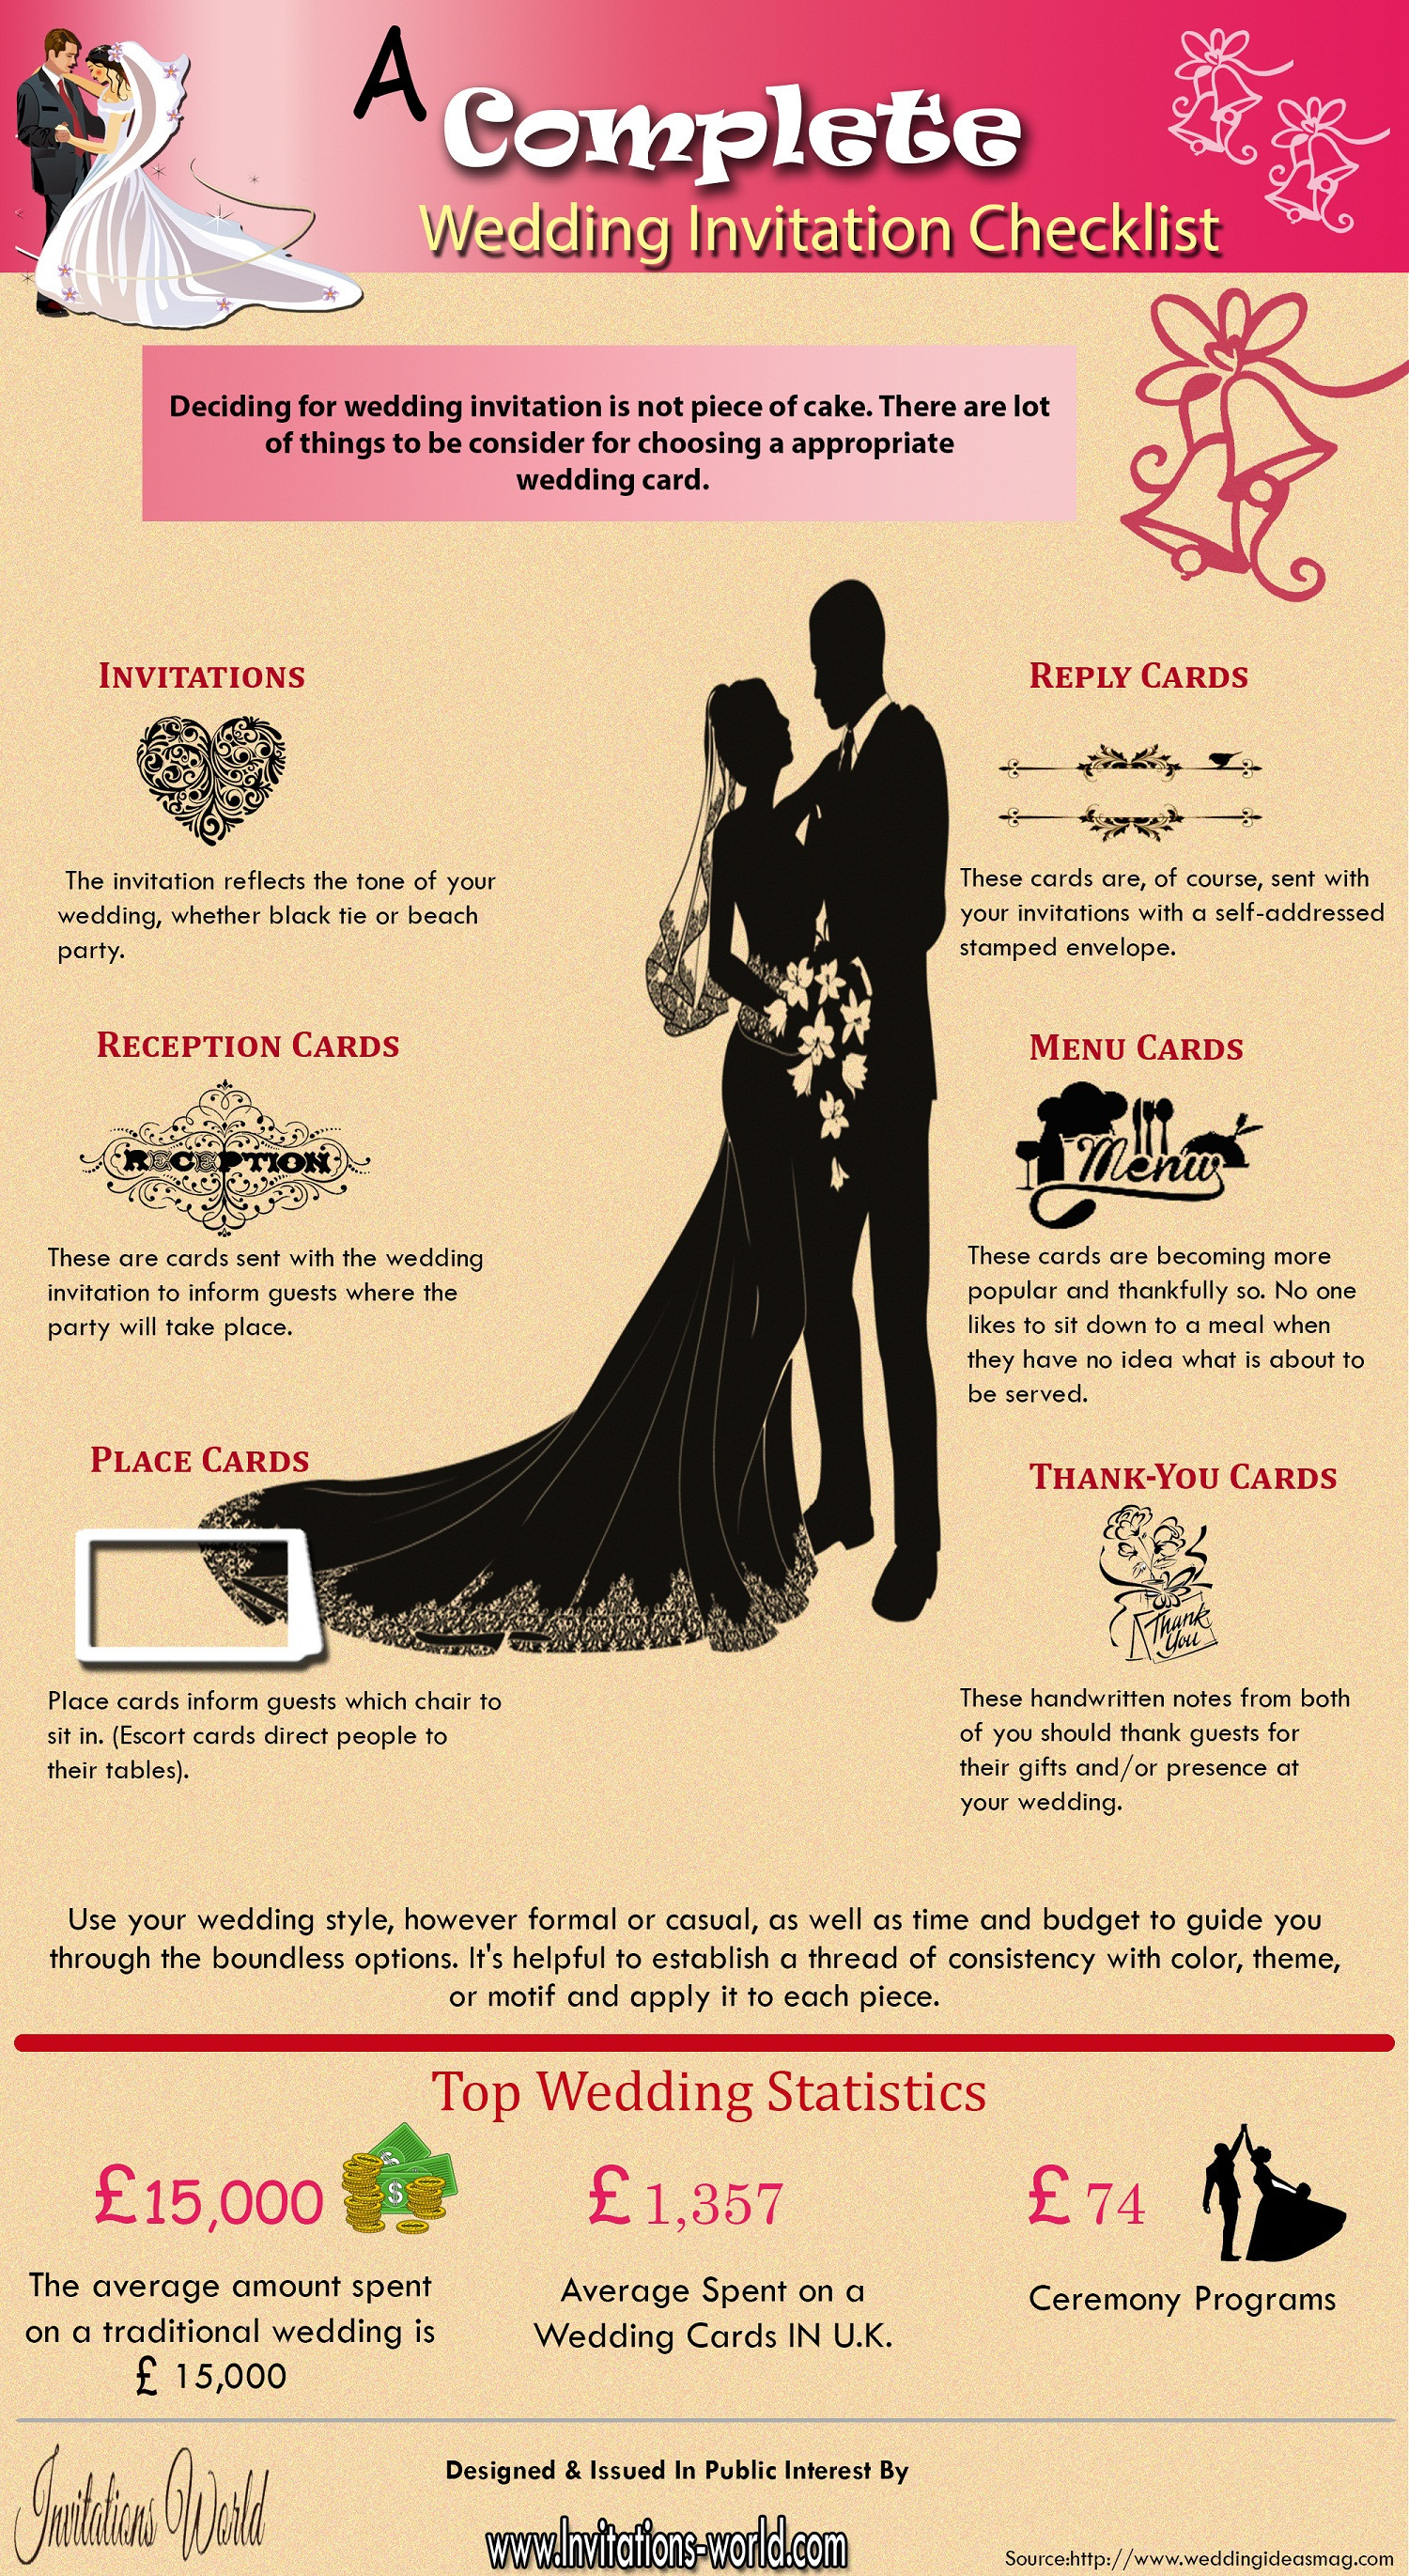 a complete wedding invitation checklist visual ly